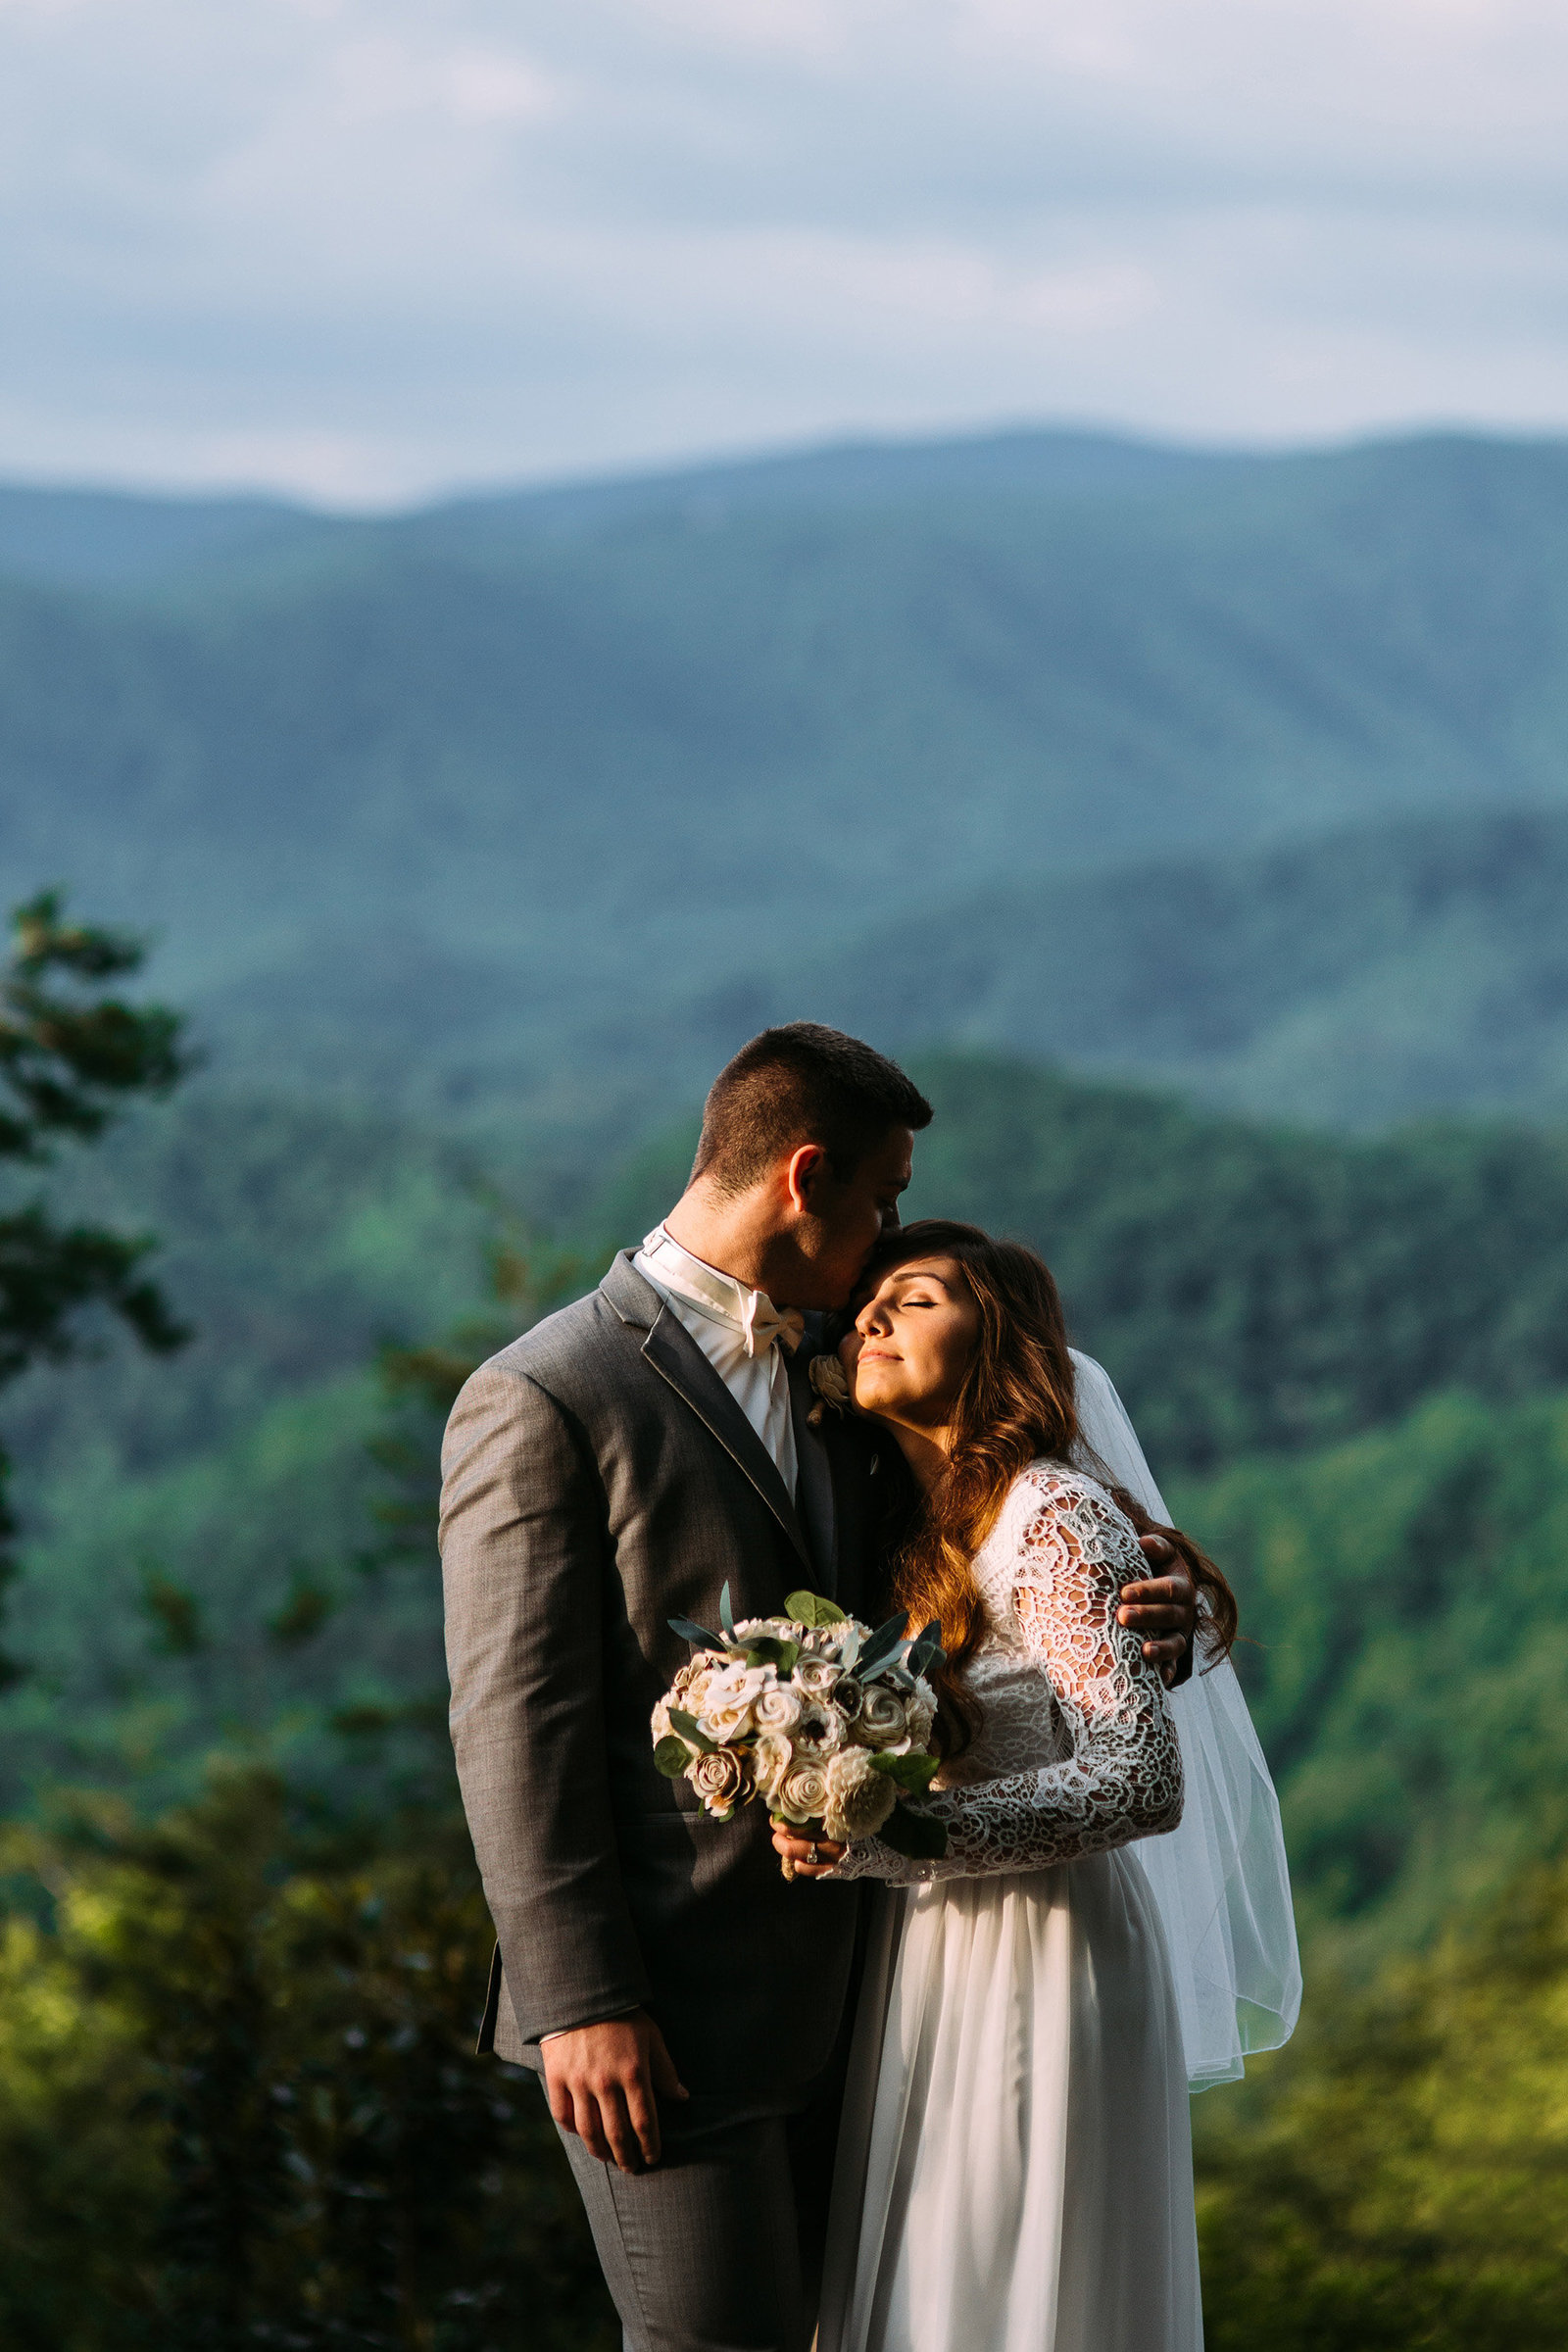 SaraLane-Stevie-Wedding-Elopement-Mountain-Photography-Graciela-Austin-LR-79PS-SMALL